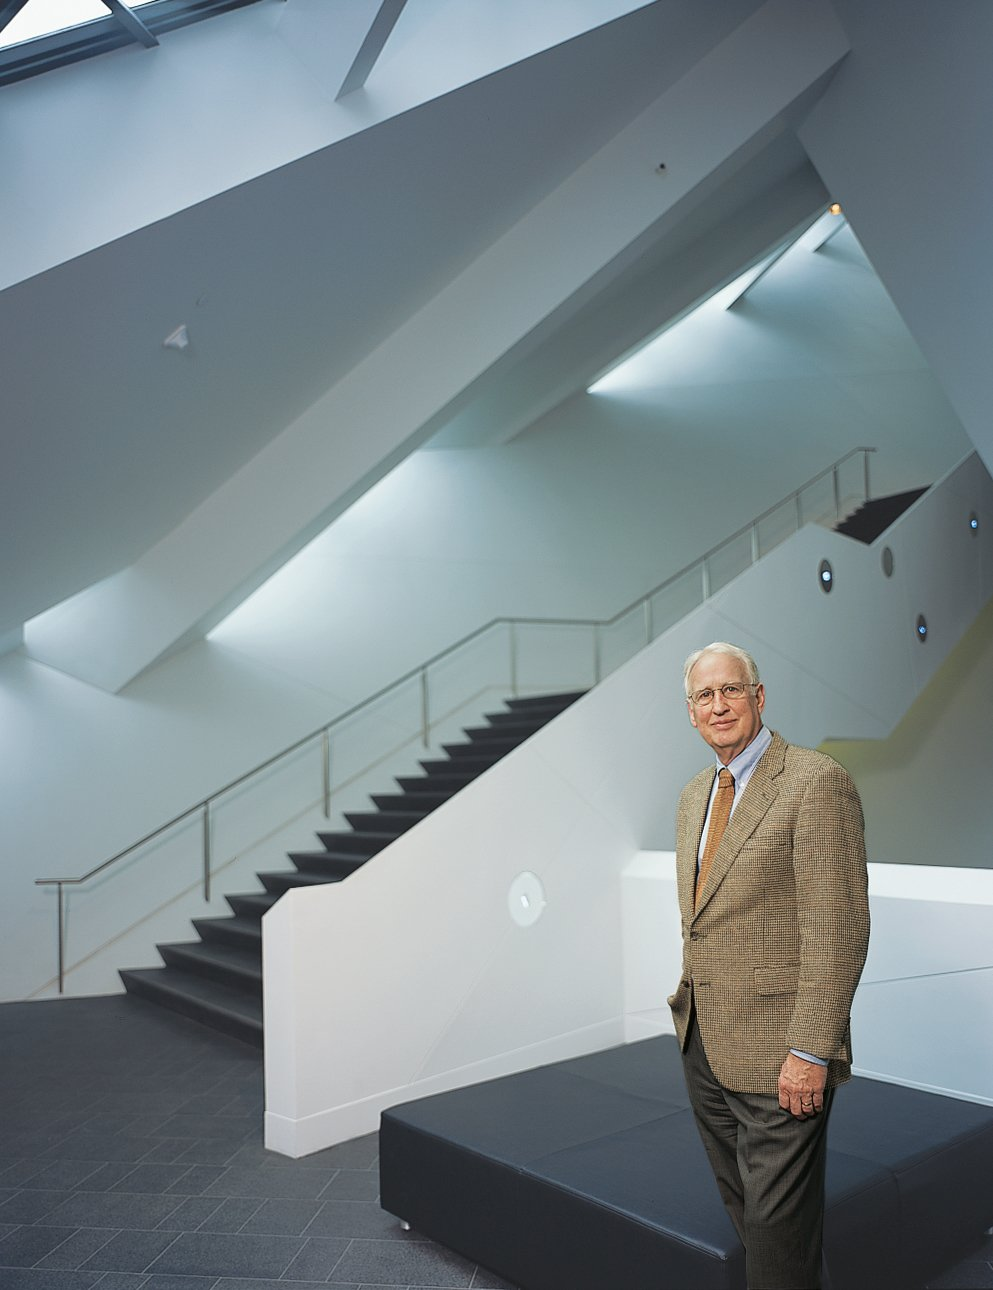 Denver Art Museum director Lewis Sharp takes in the interior of the new Libeskind-  designed building. It's not just visitors who like the design—artists like Betty Woodman   and Tatsuo Miyajima enjoyed installing their work in the new structure as well.  Photo 4 of 11 in High Design in Denver